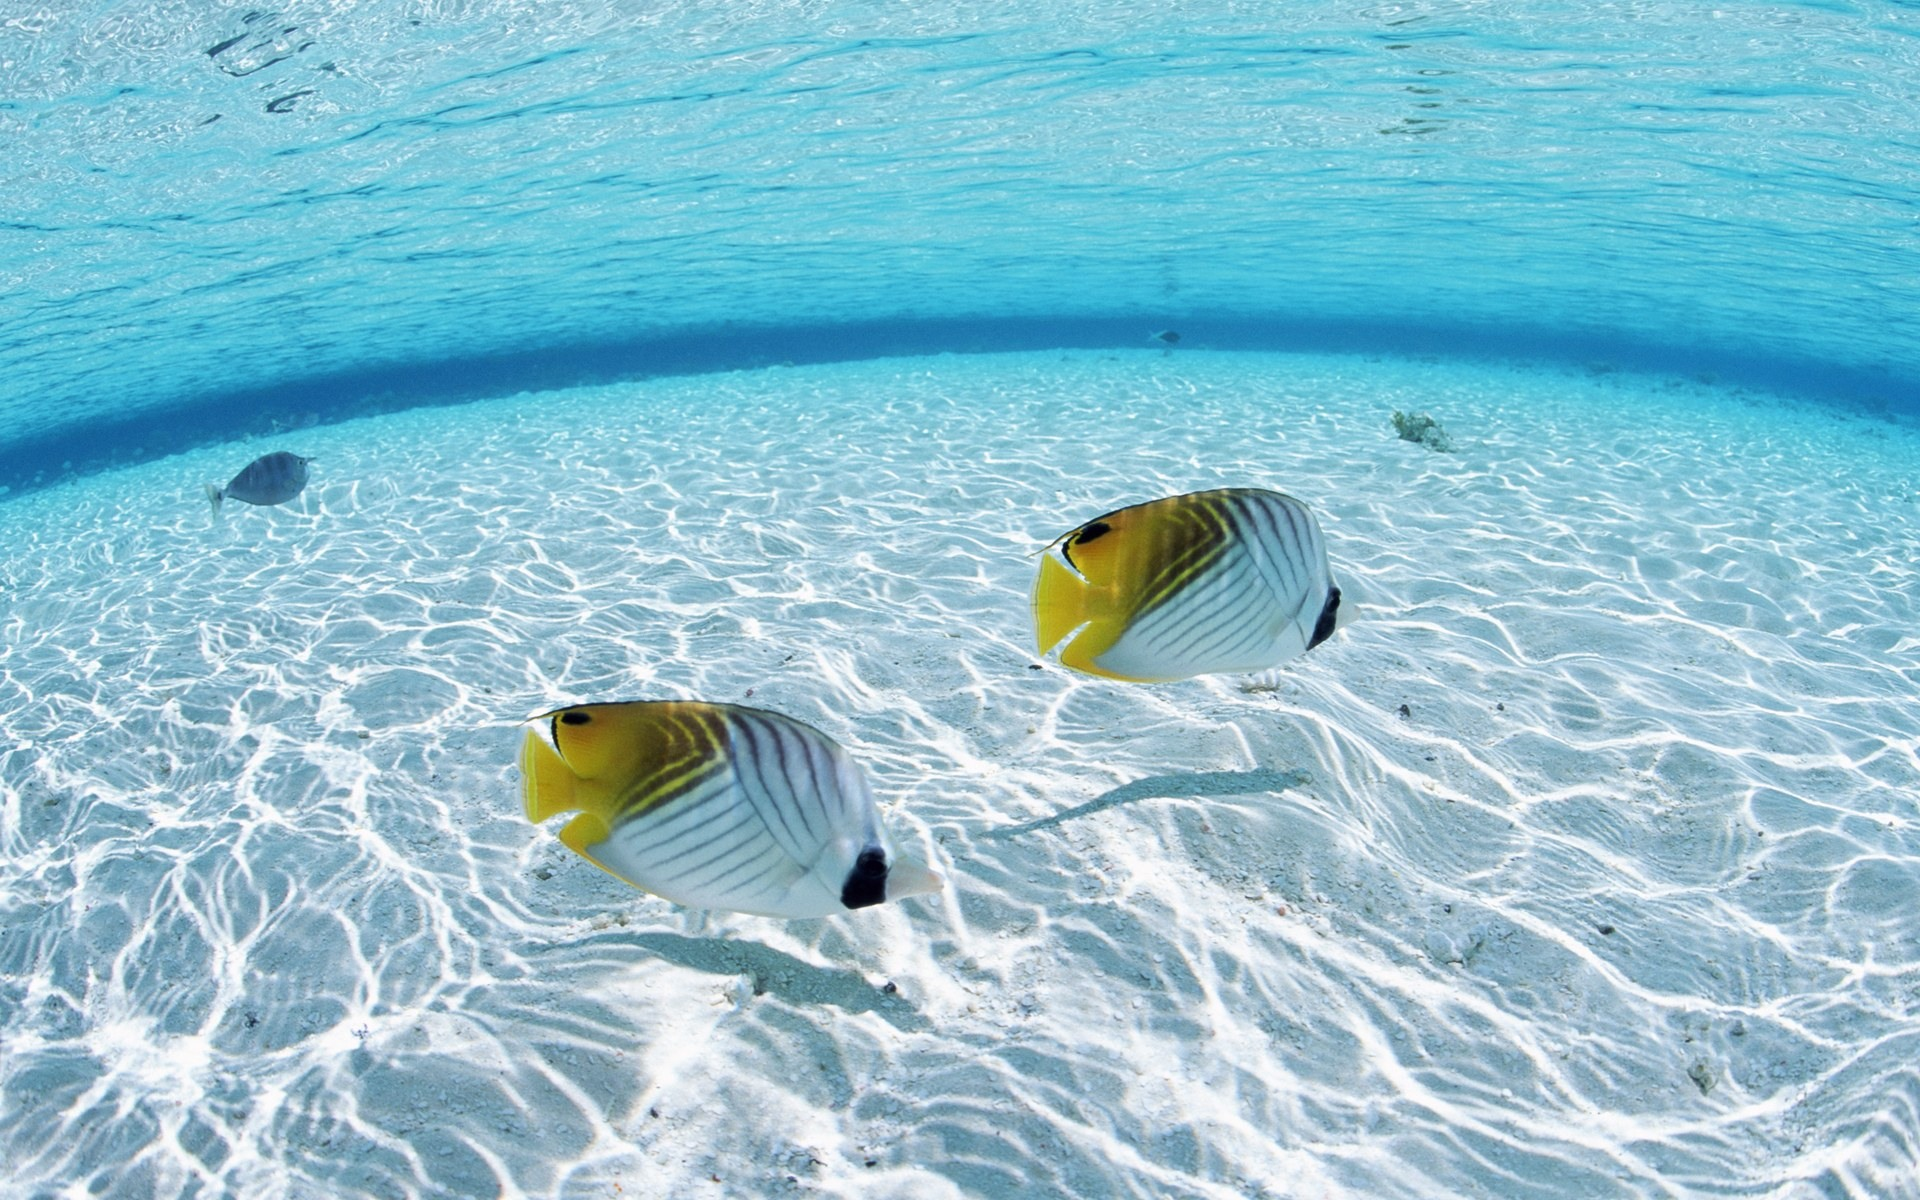 Fish in the Ocean wallpaper 1920x1200